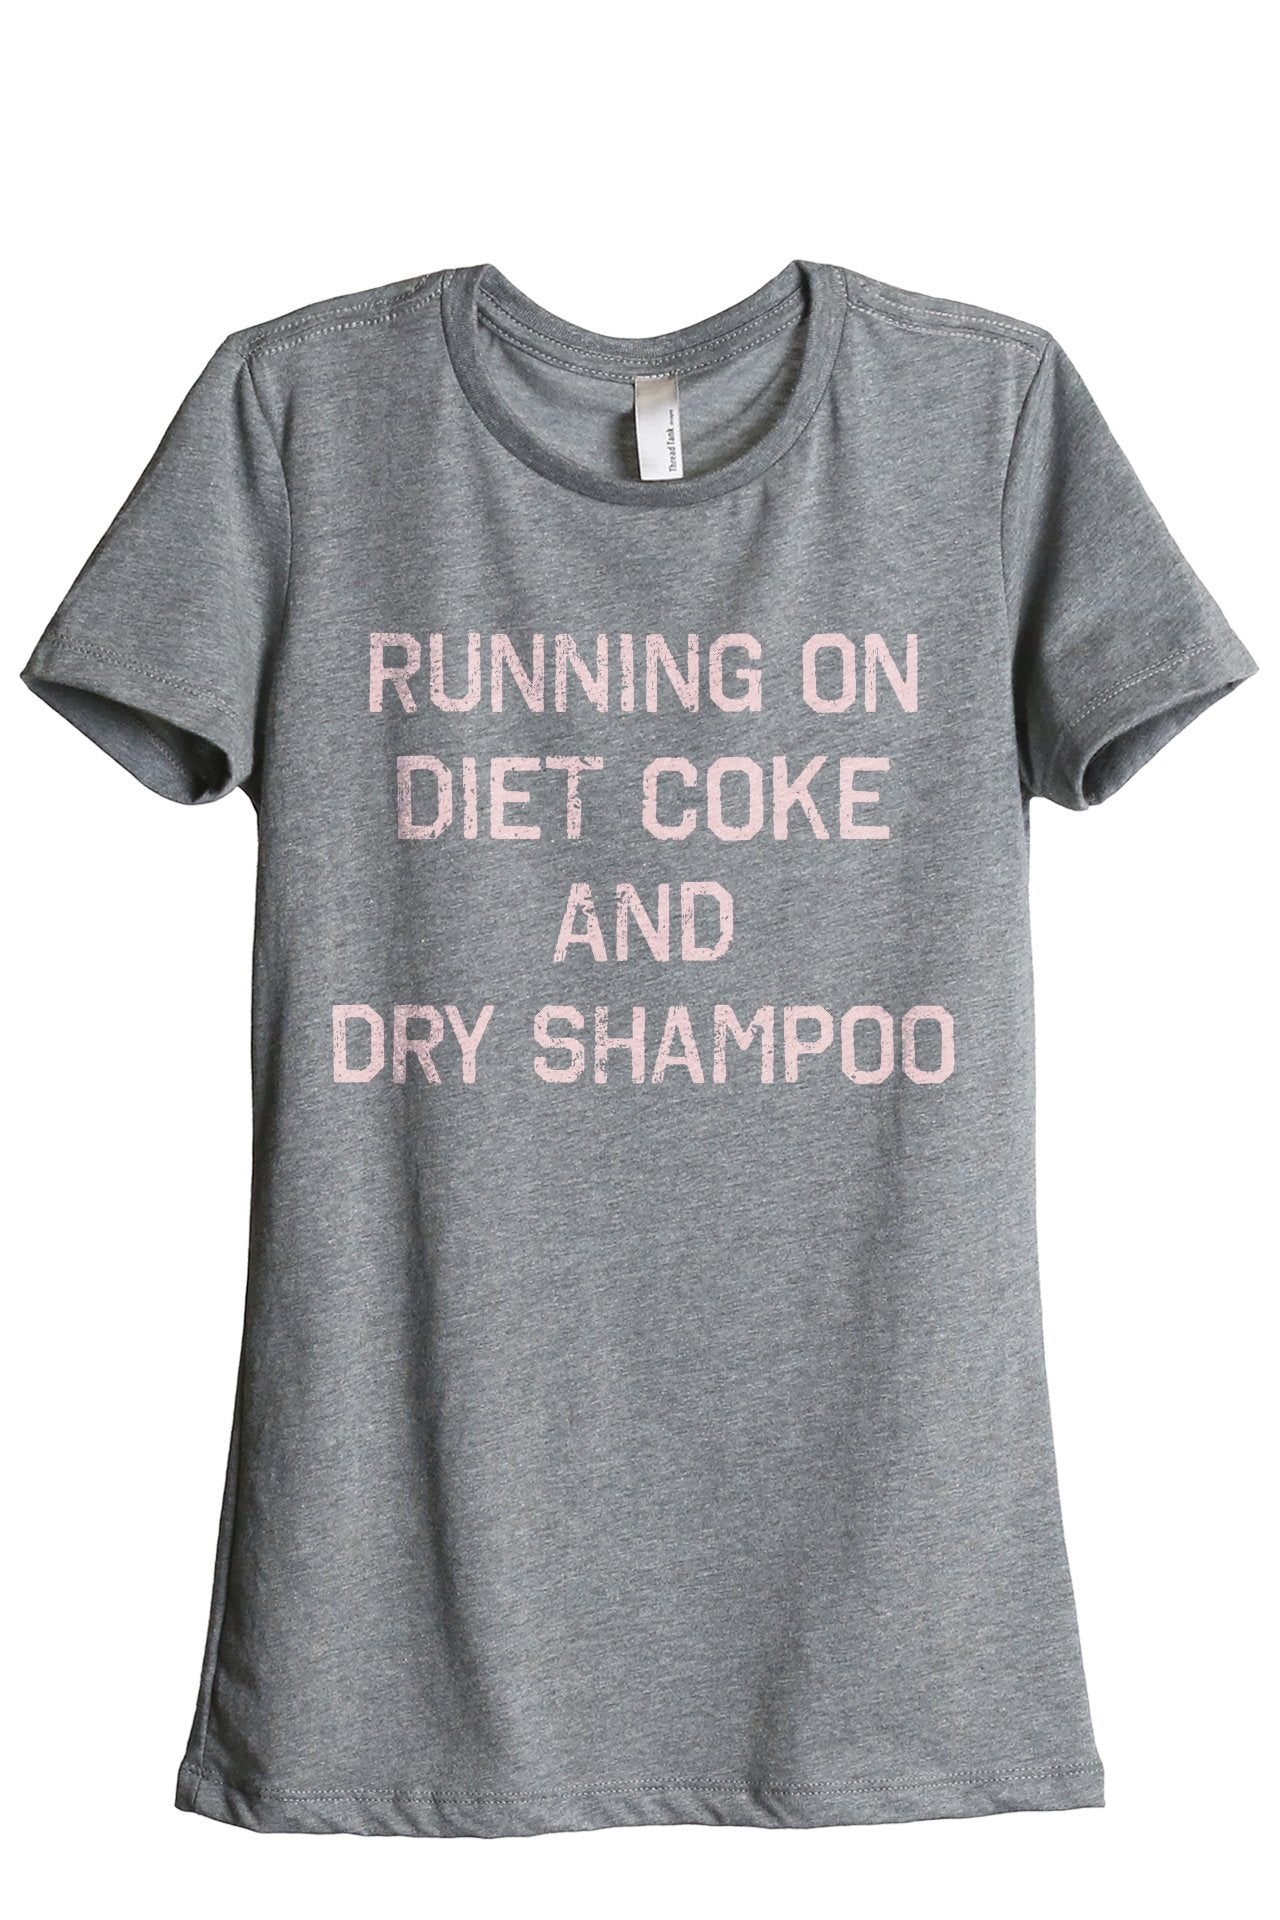 Running On Diet Coke And Dry Shampoo Women's Relaxed Crewneck T-Shirt Top Tee Heather Grey Pink Exclusive